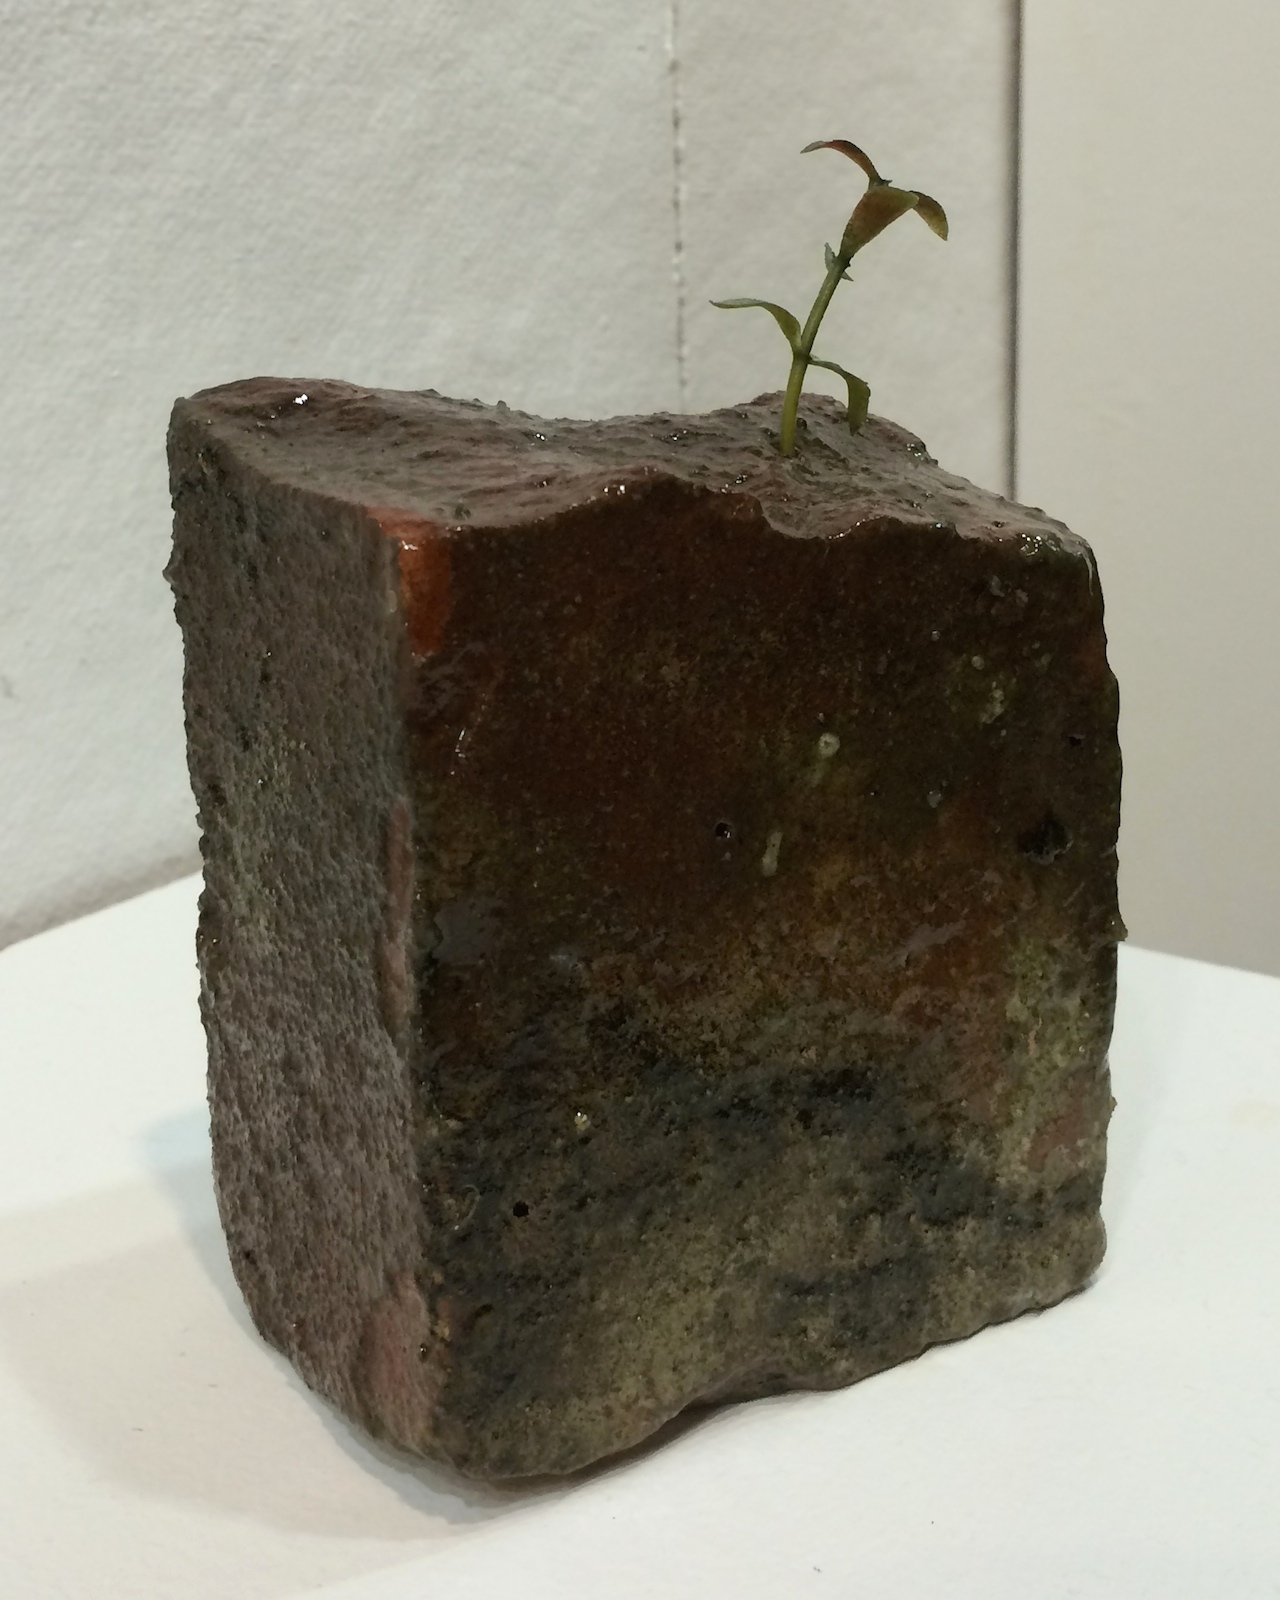 A sculpture by Amy Stienbarger in a pop-up exhibition at Abby Goldstein's studio at 110 Nevins Street